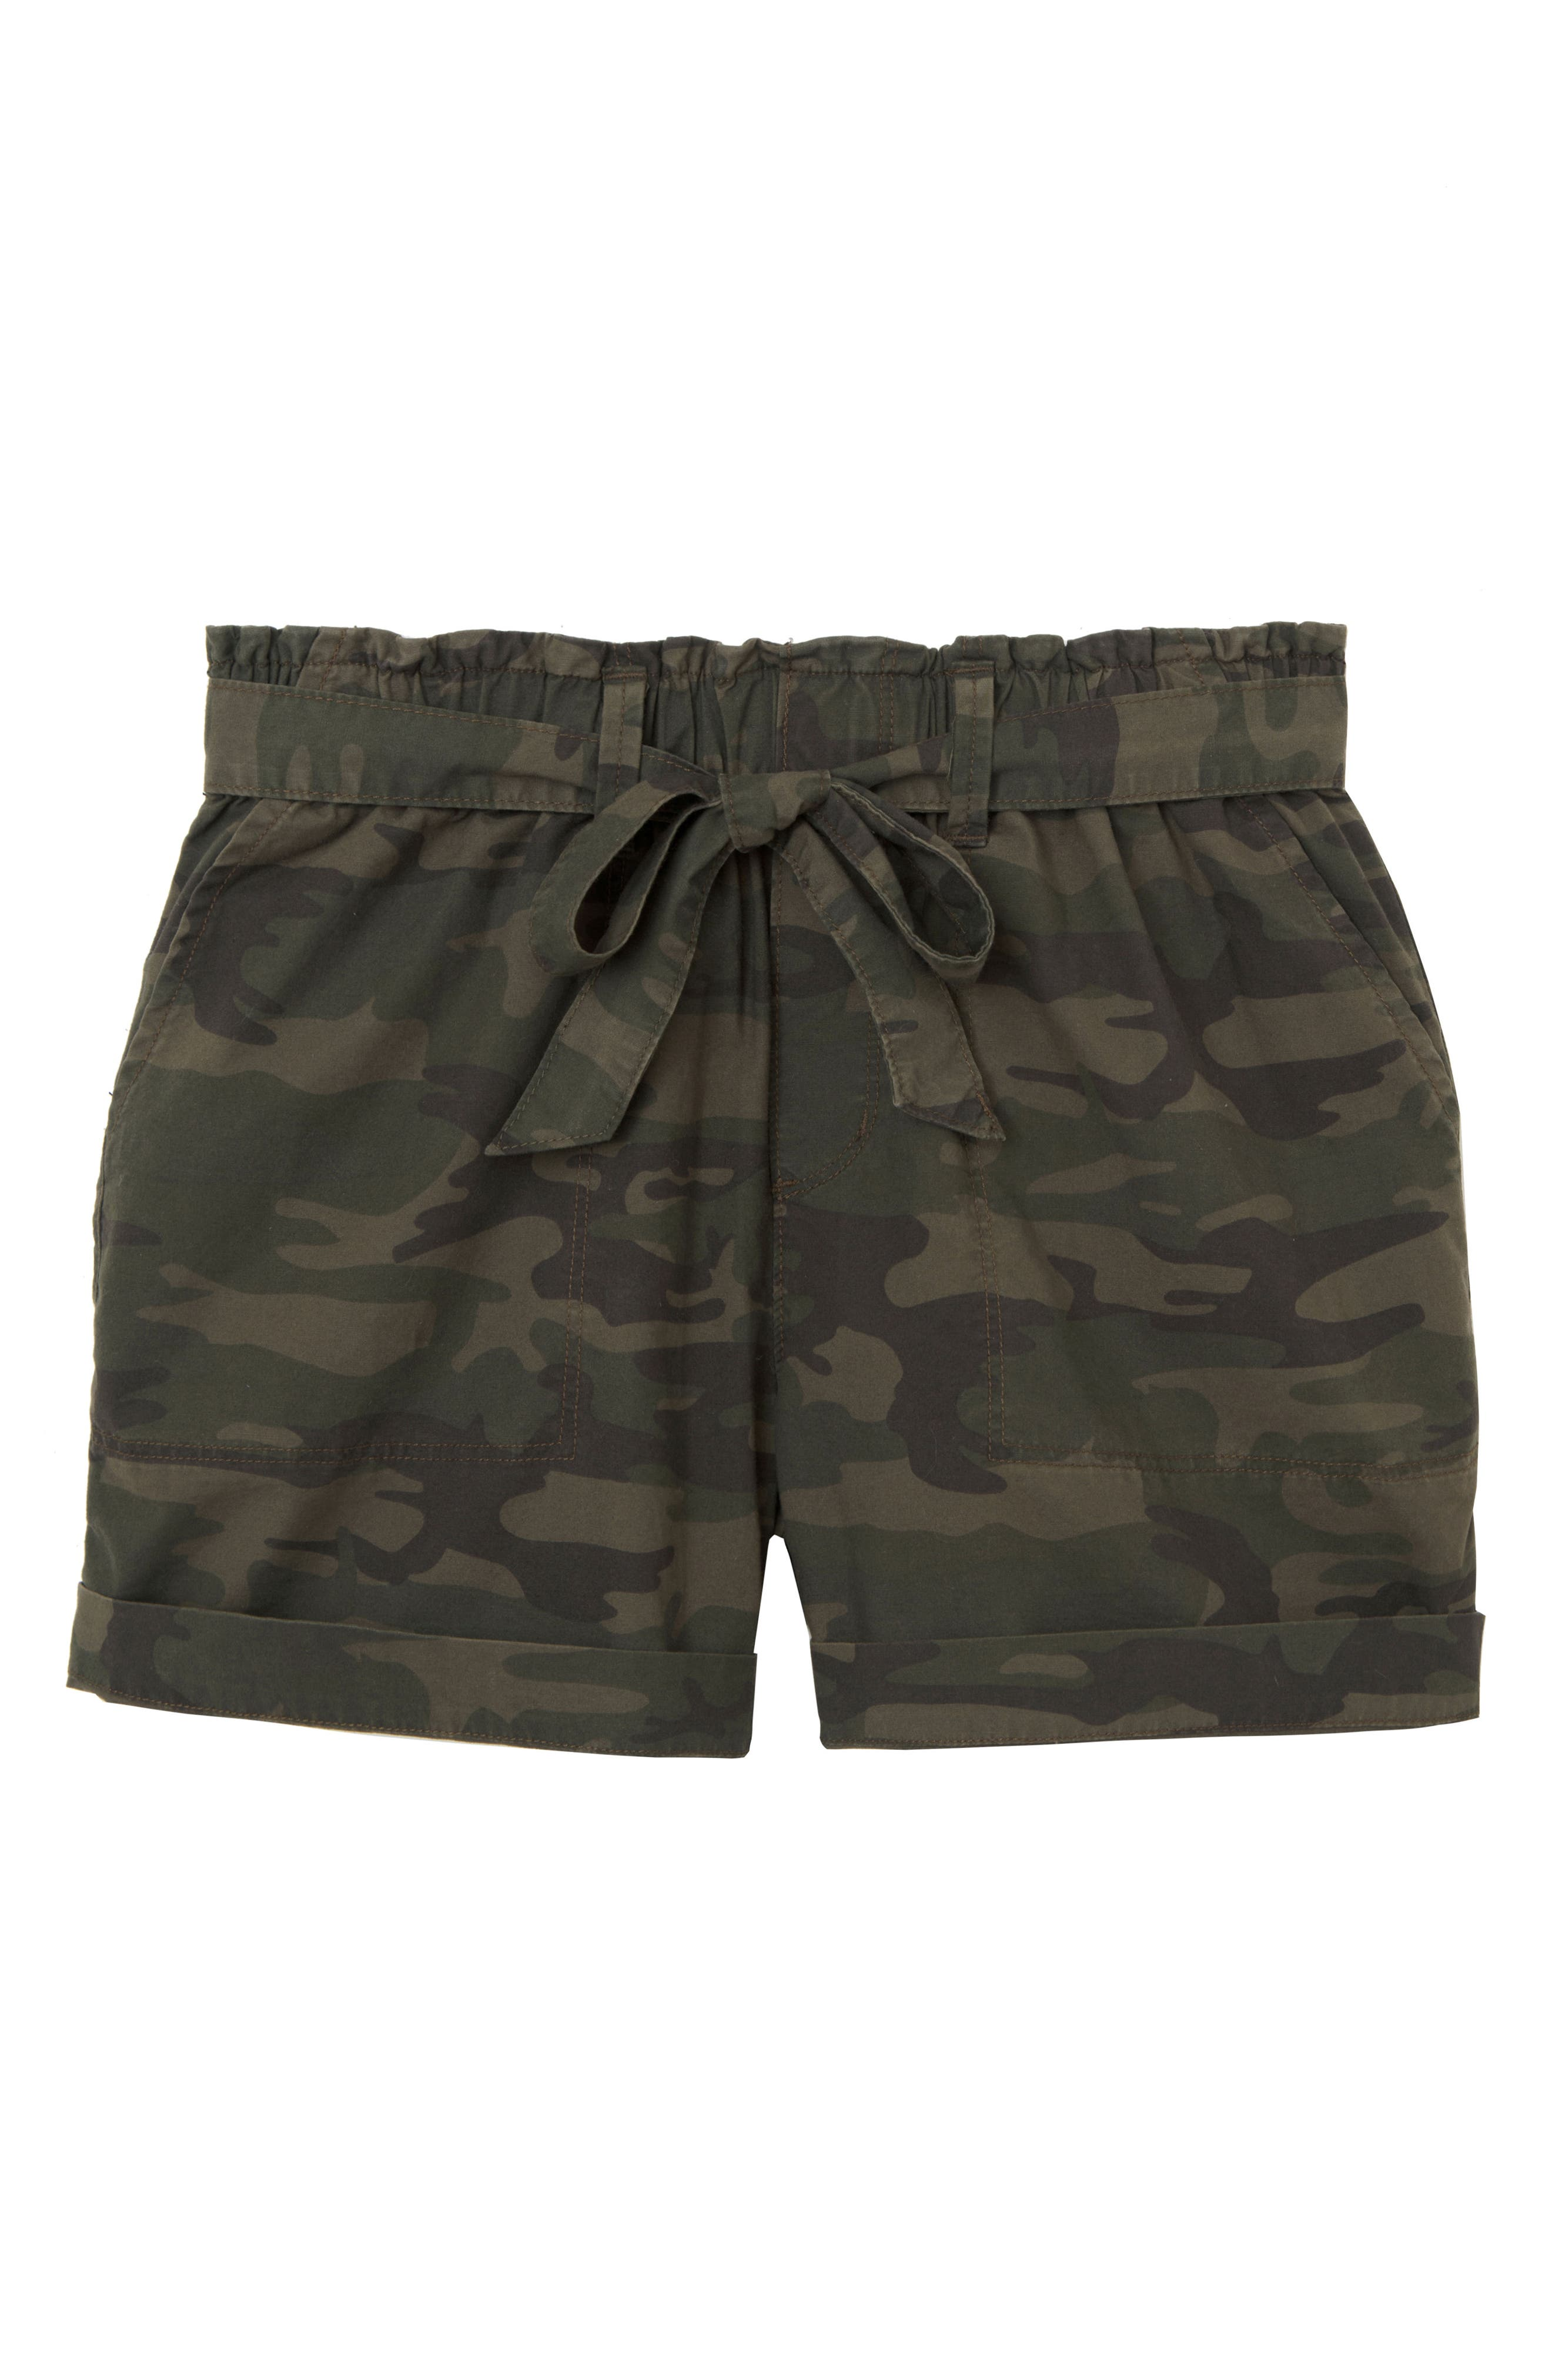 Daydreamer Stretch Cotton Camo Shorts,                             Alternate thumbnail 5, color,                             Mother Nature Camo